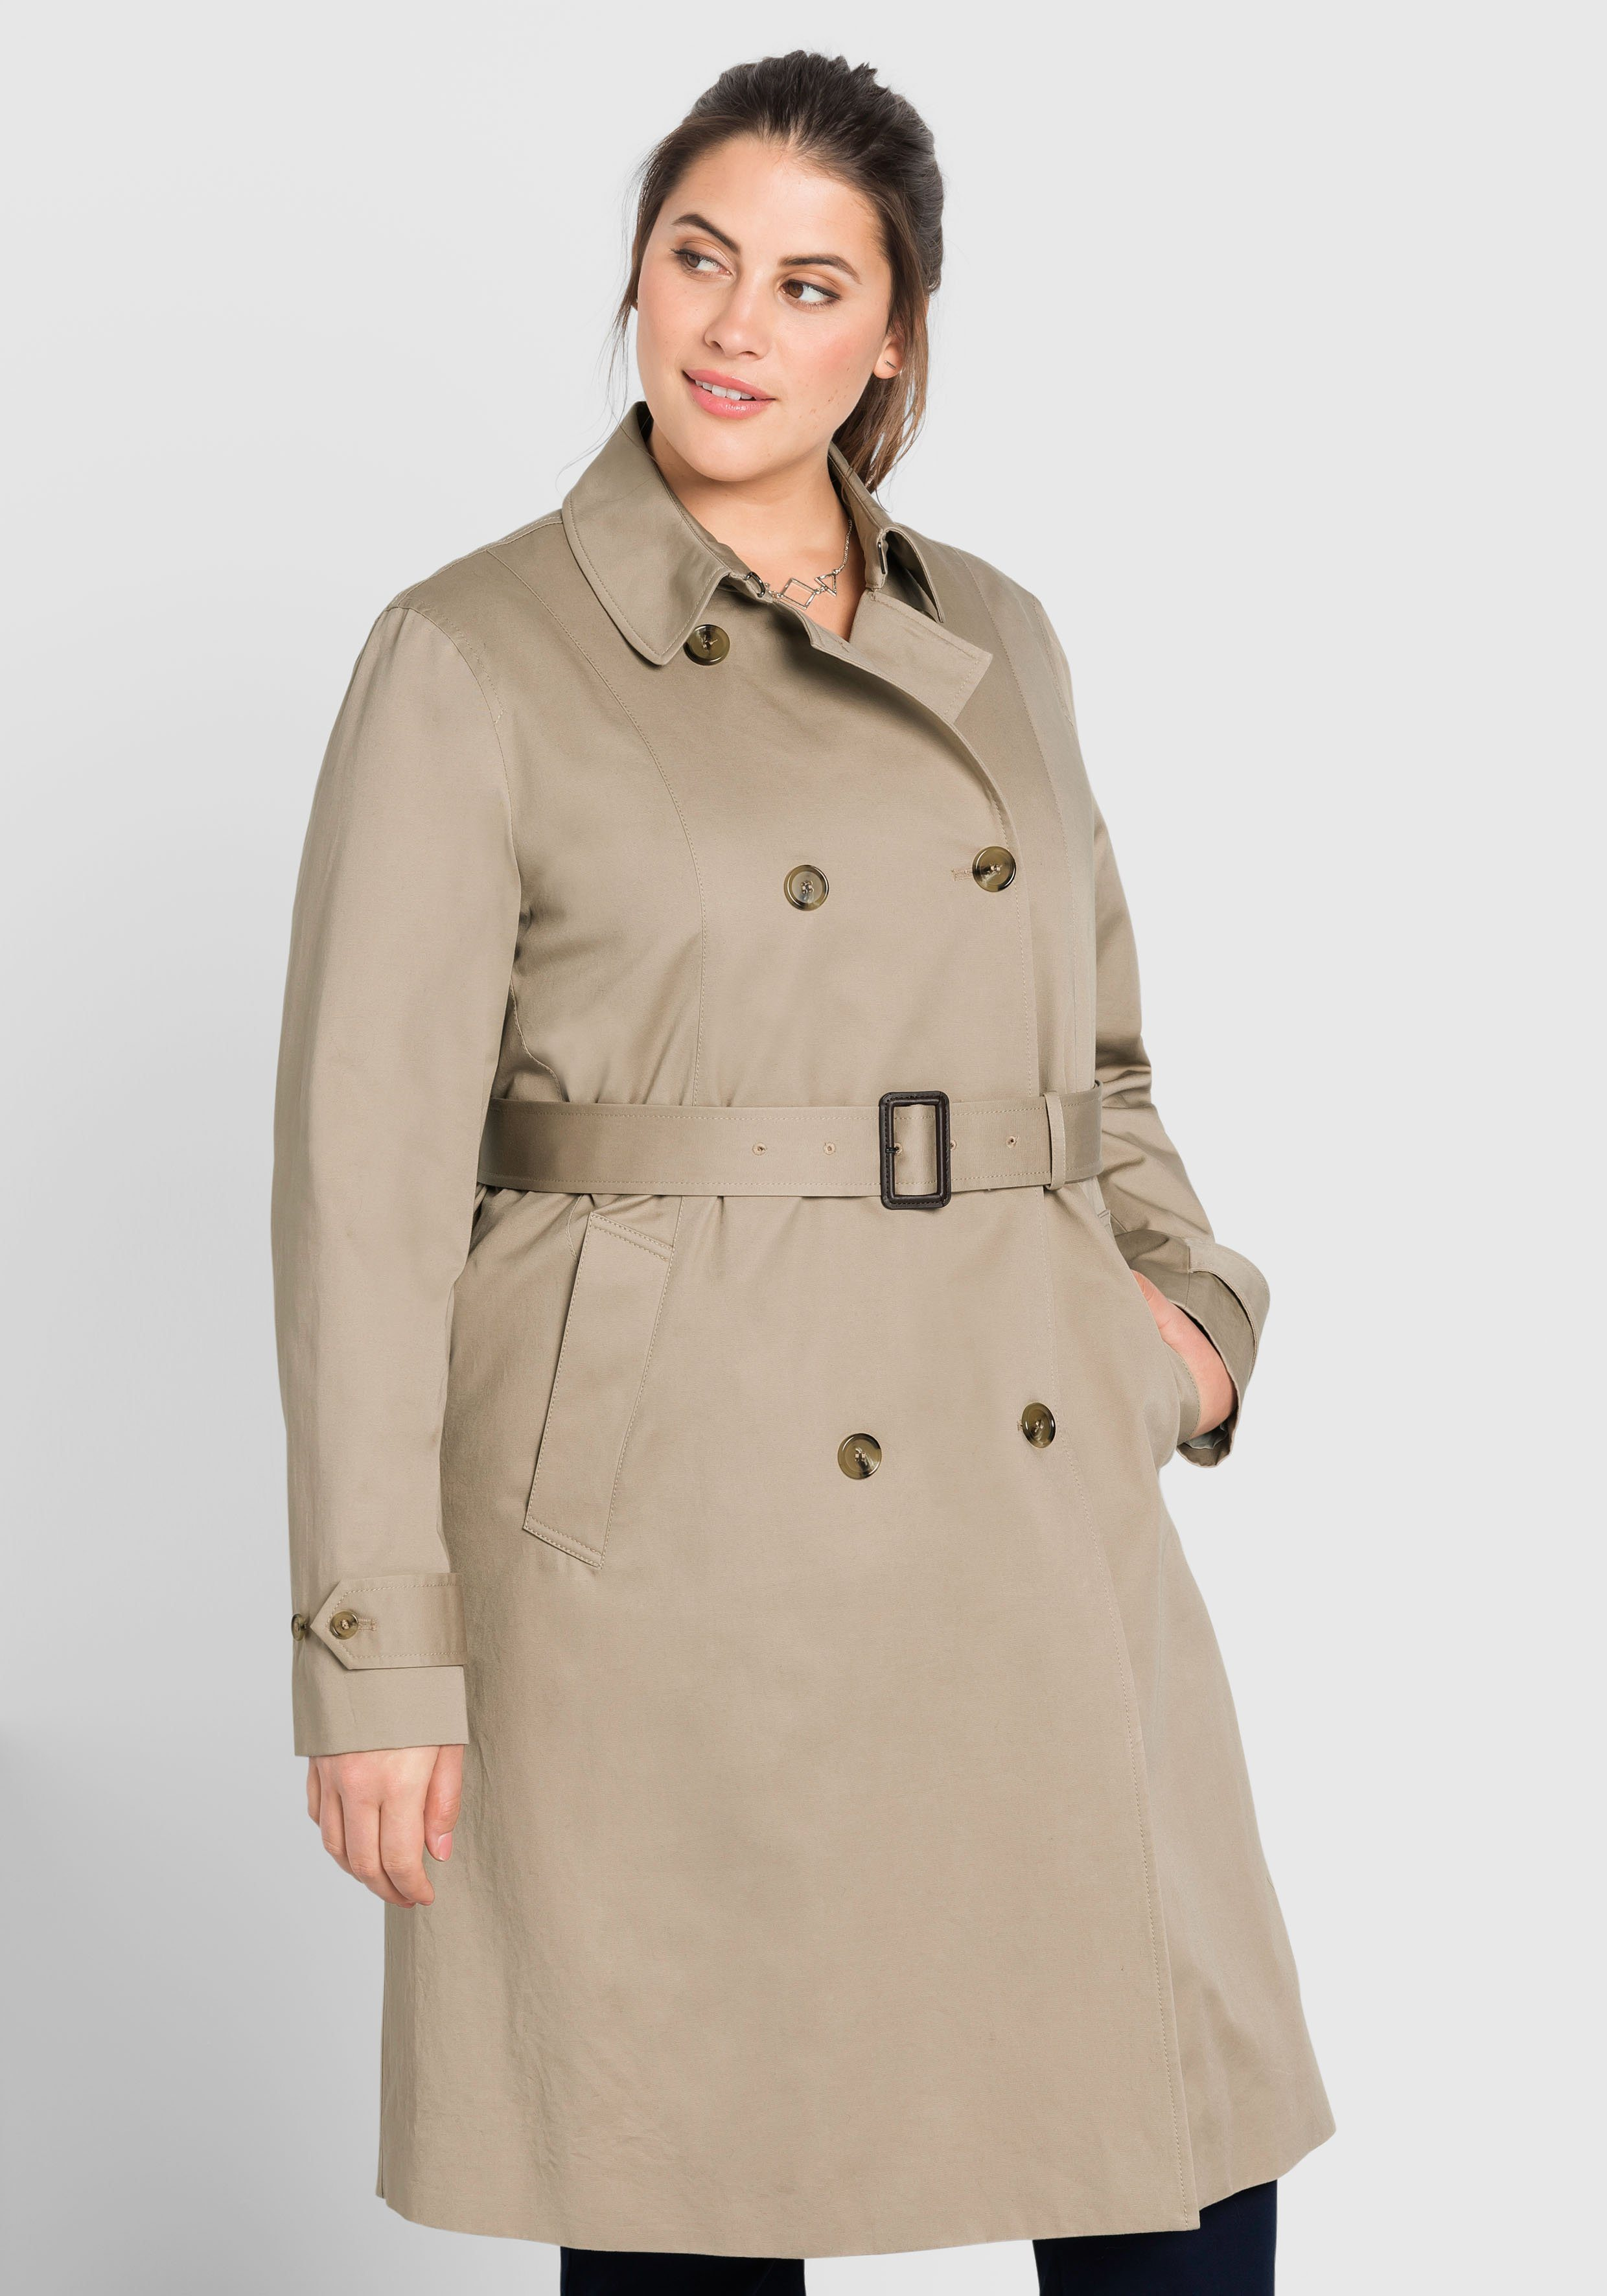 sheego Casual Trenchcoat mit abknöpfbarem Innenfutter | Bekleidung > Mäntel > Trenchcoats | sheego Casual